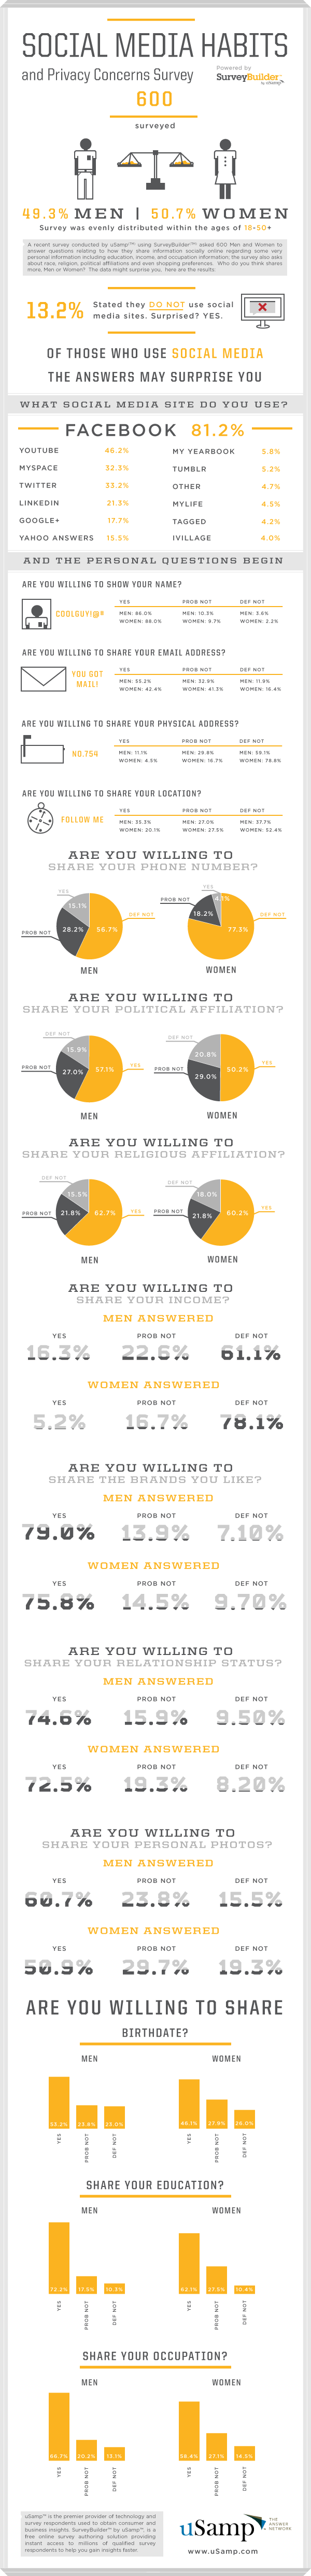 What do you share on social media sites? [Infographic] #EAv #FlowConnection